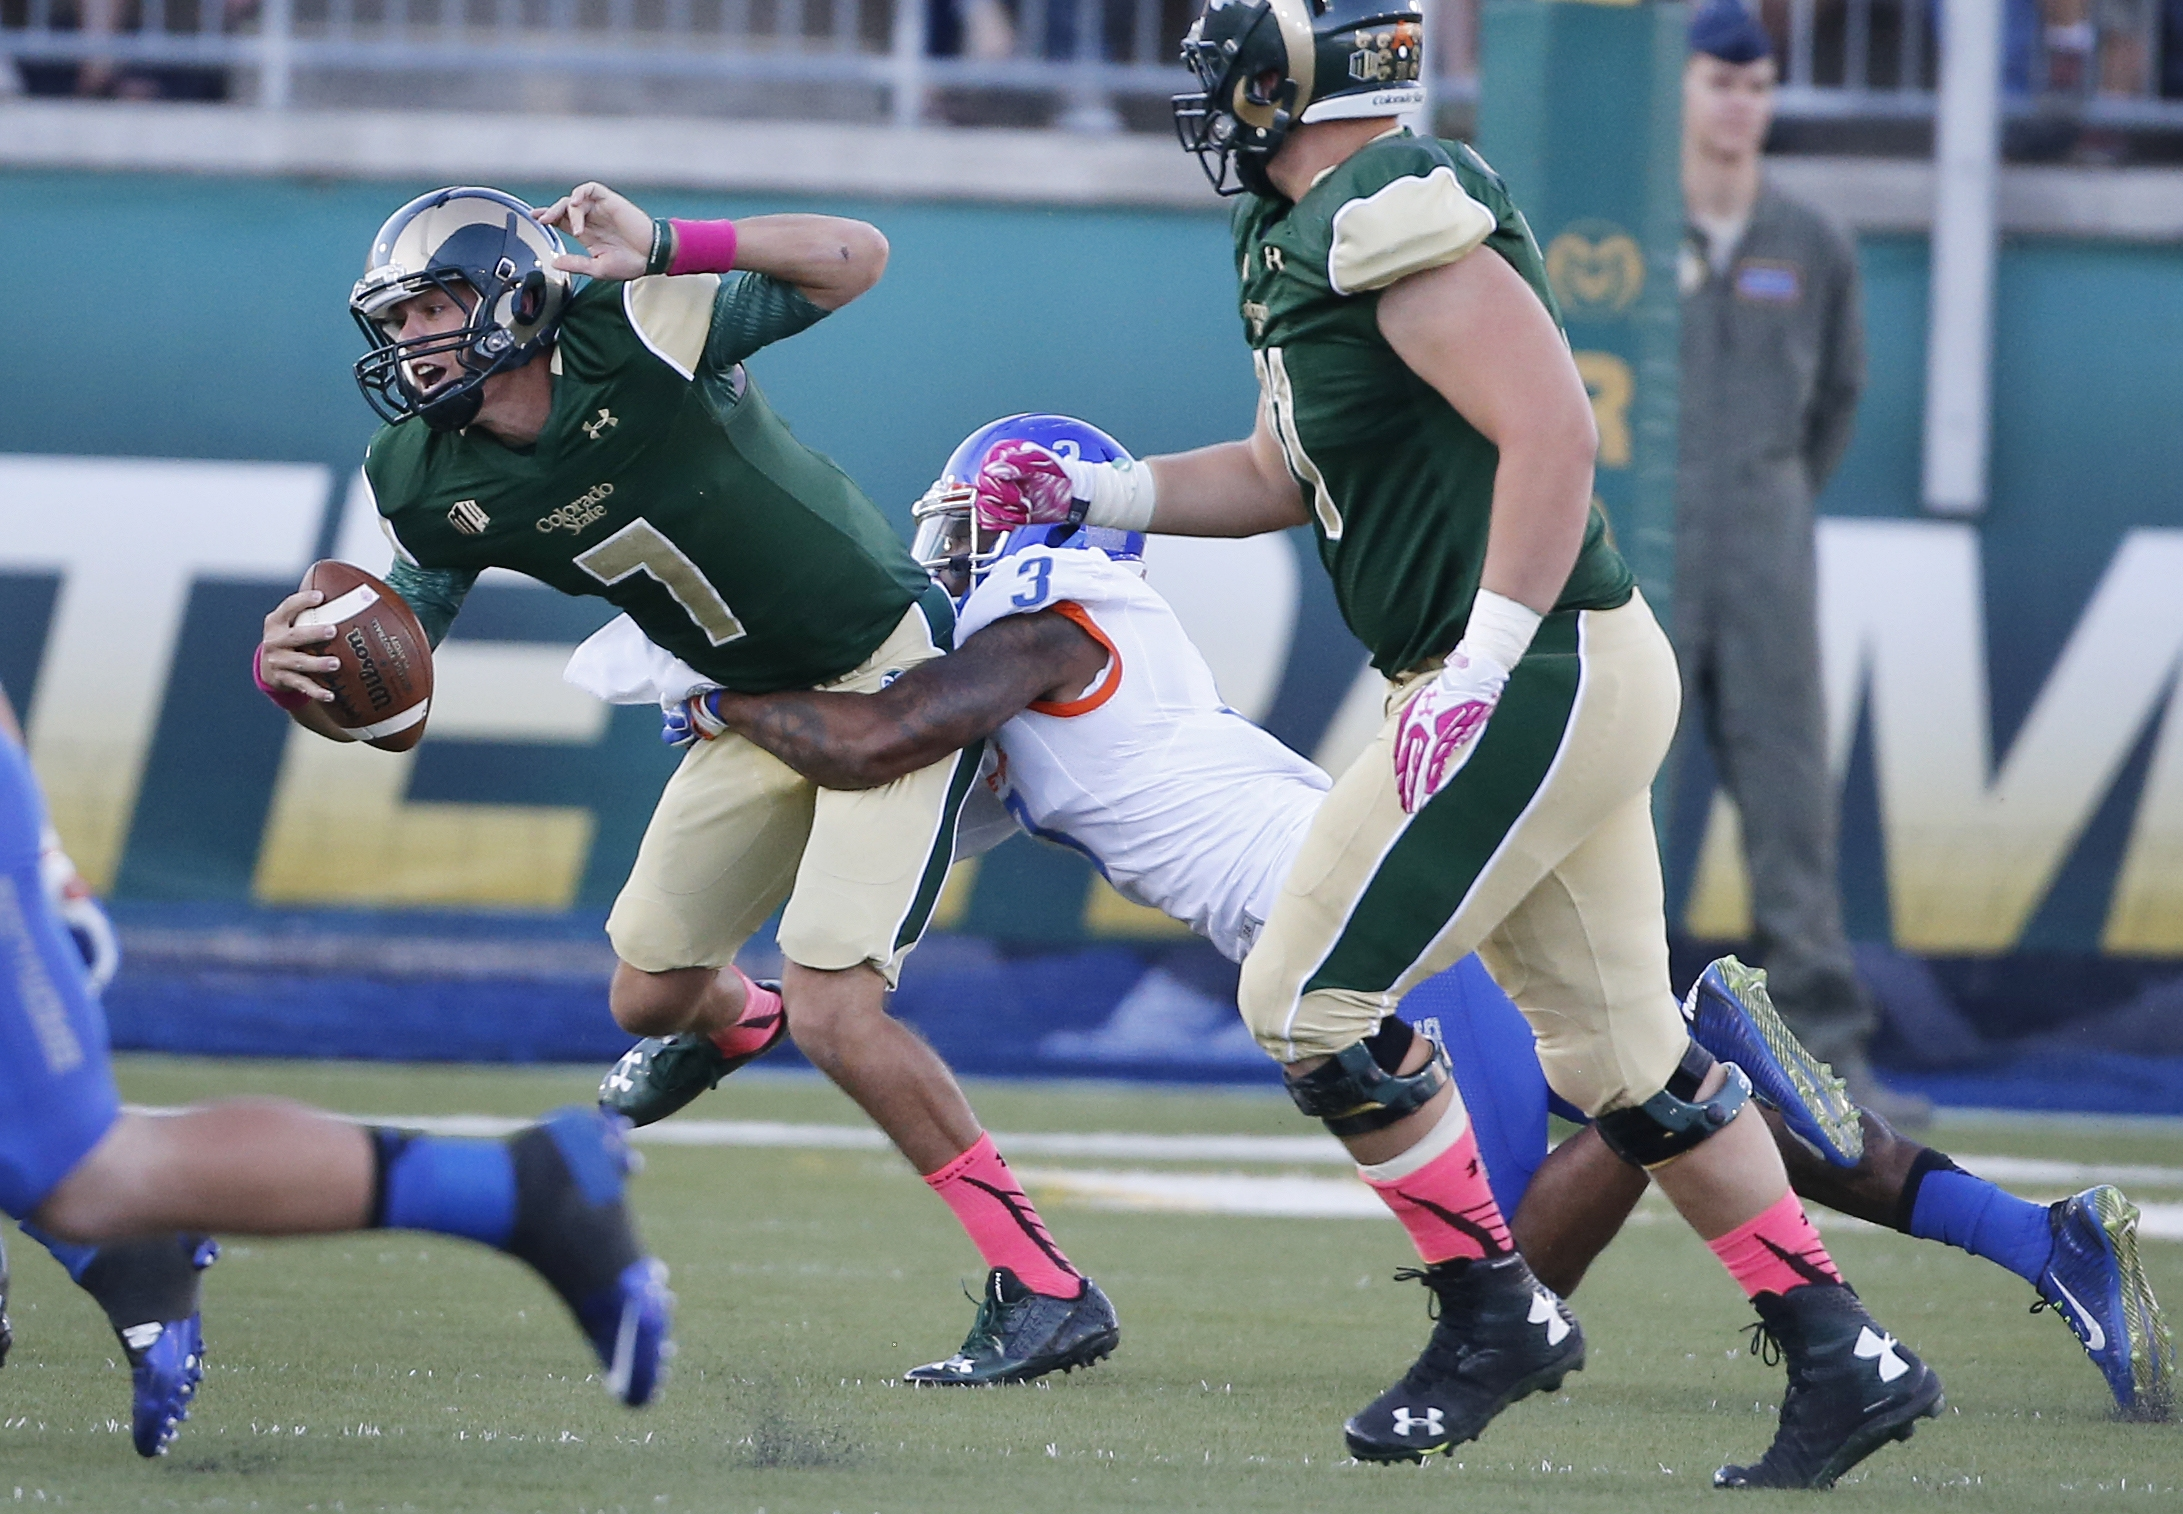 Colorado State quarterback Nick Stevens (7) is sacked by Boise State safety Chanceller James (3) in the first half of an NCAA college football game Saturday, Oct. 10, 2015, in Fort Collins, Colo. (AP Photo/Brennan Linsley)